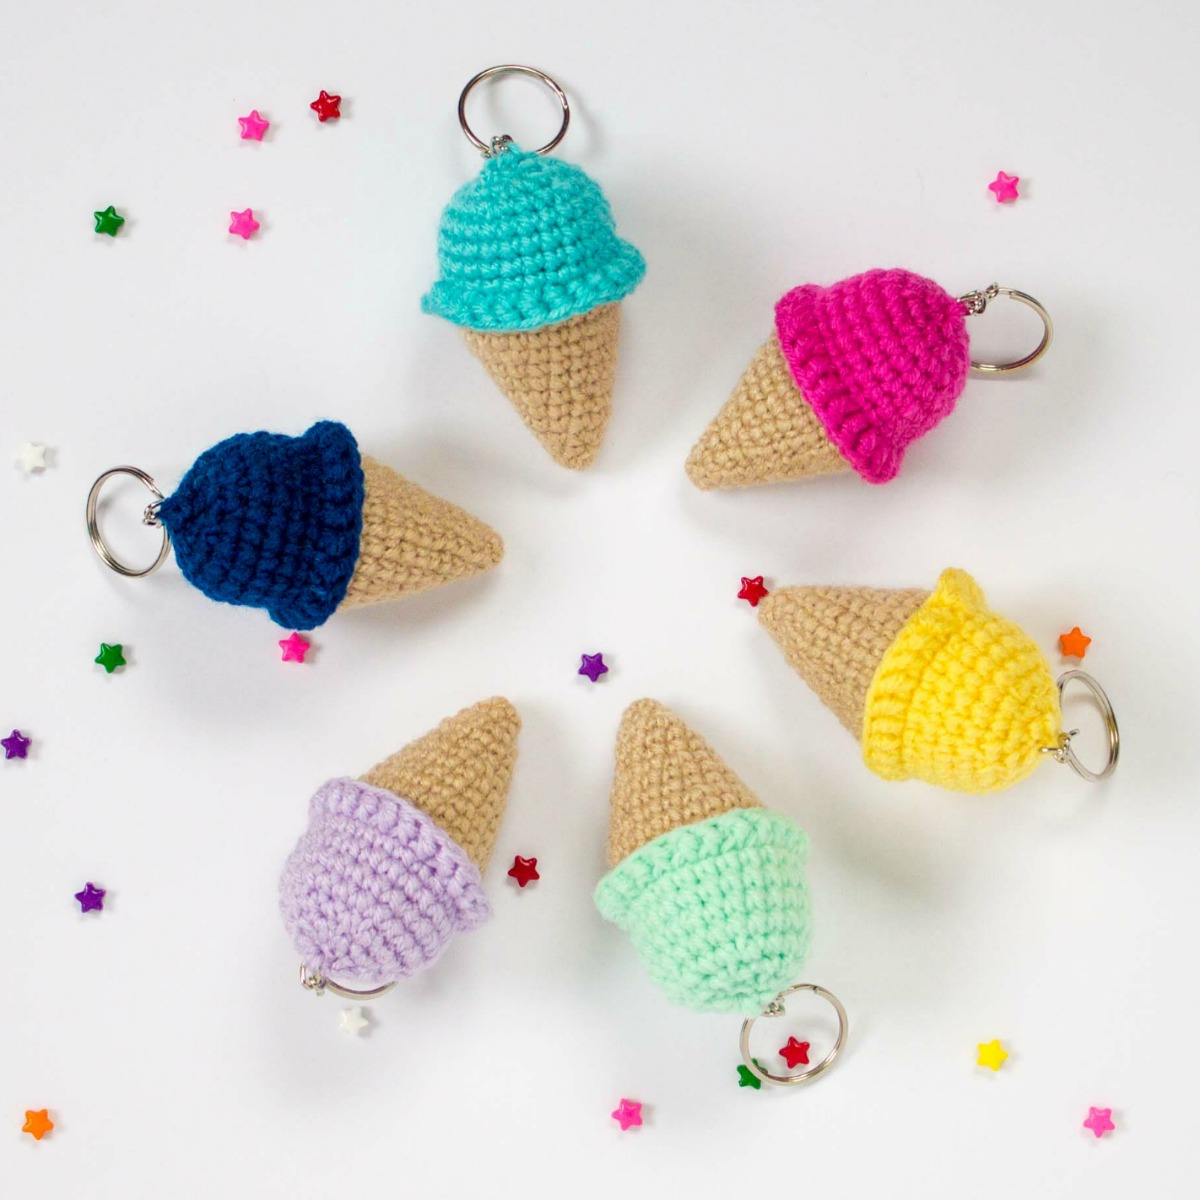 Free Crochet Keychain Pattern- Ice Cream Cone - thefriendlyredfox.com f42be6e80200